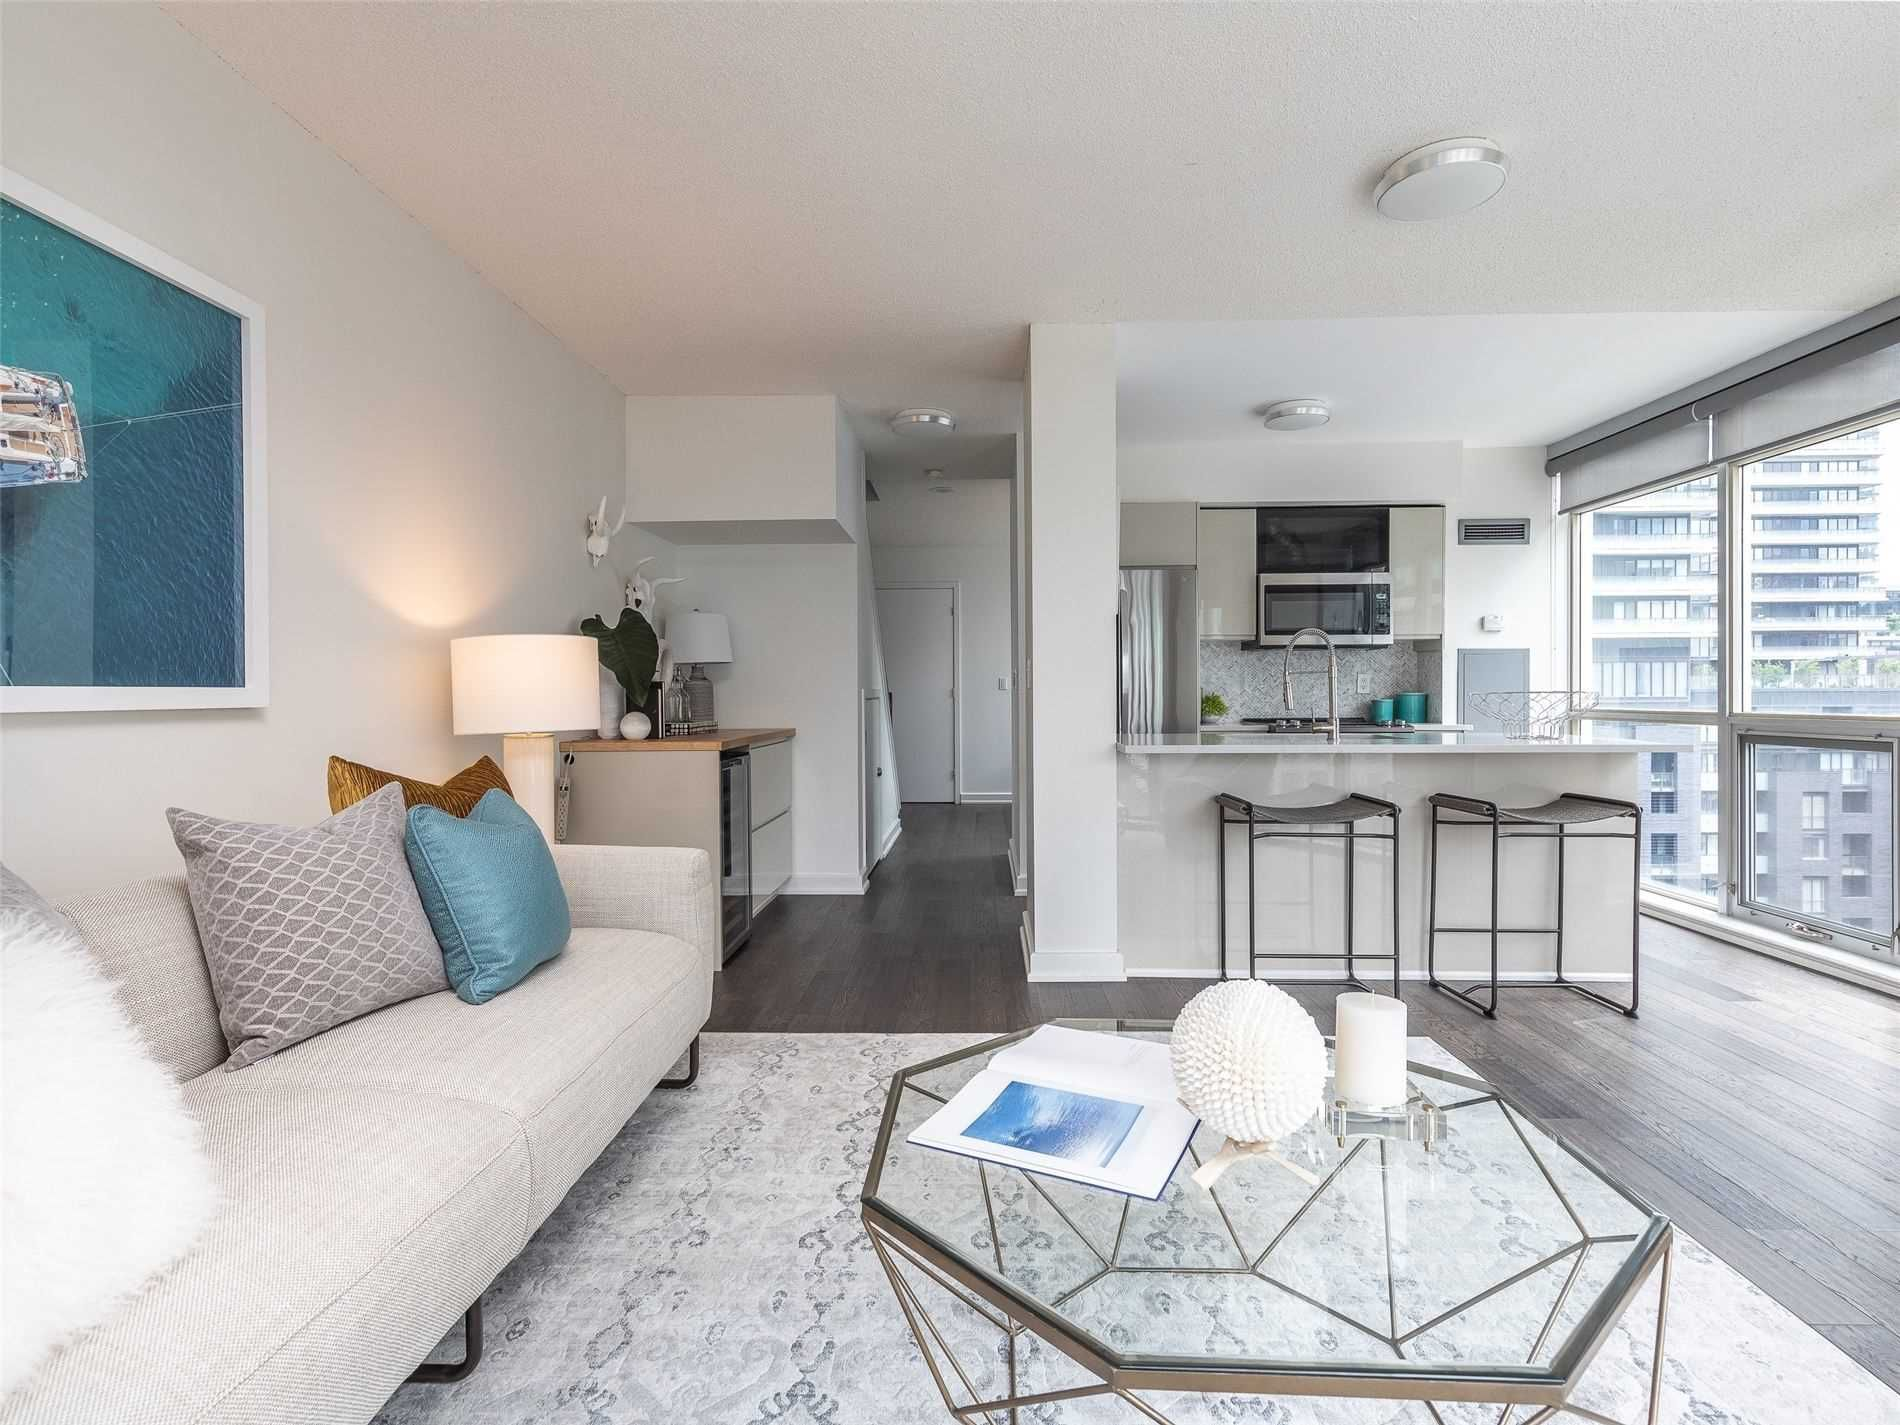 36 Blue Jays Way, unit 912 for sale in Toronto - image #2